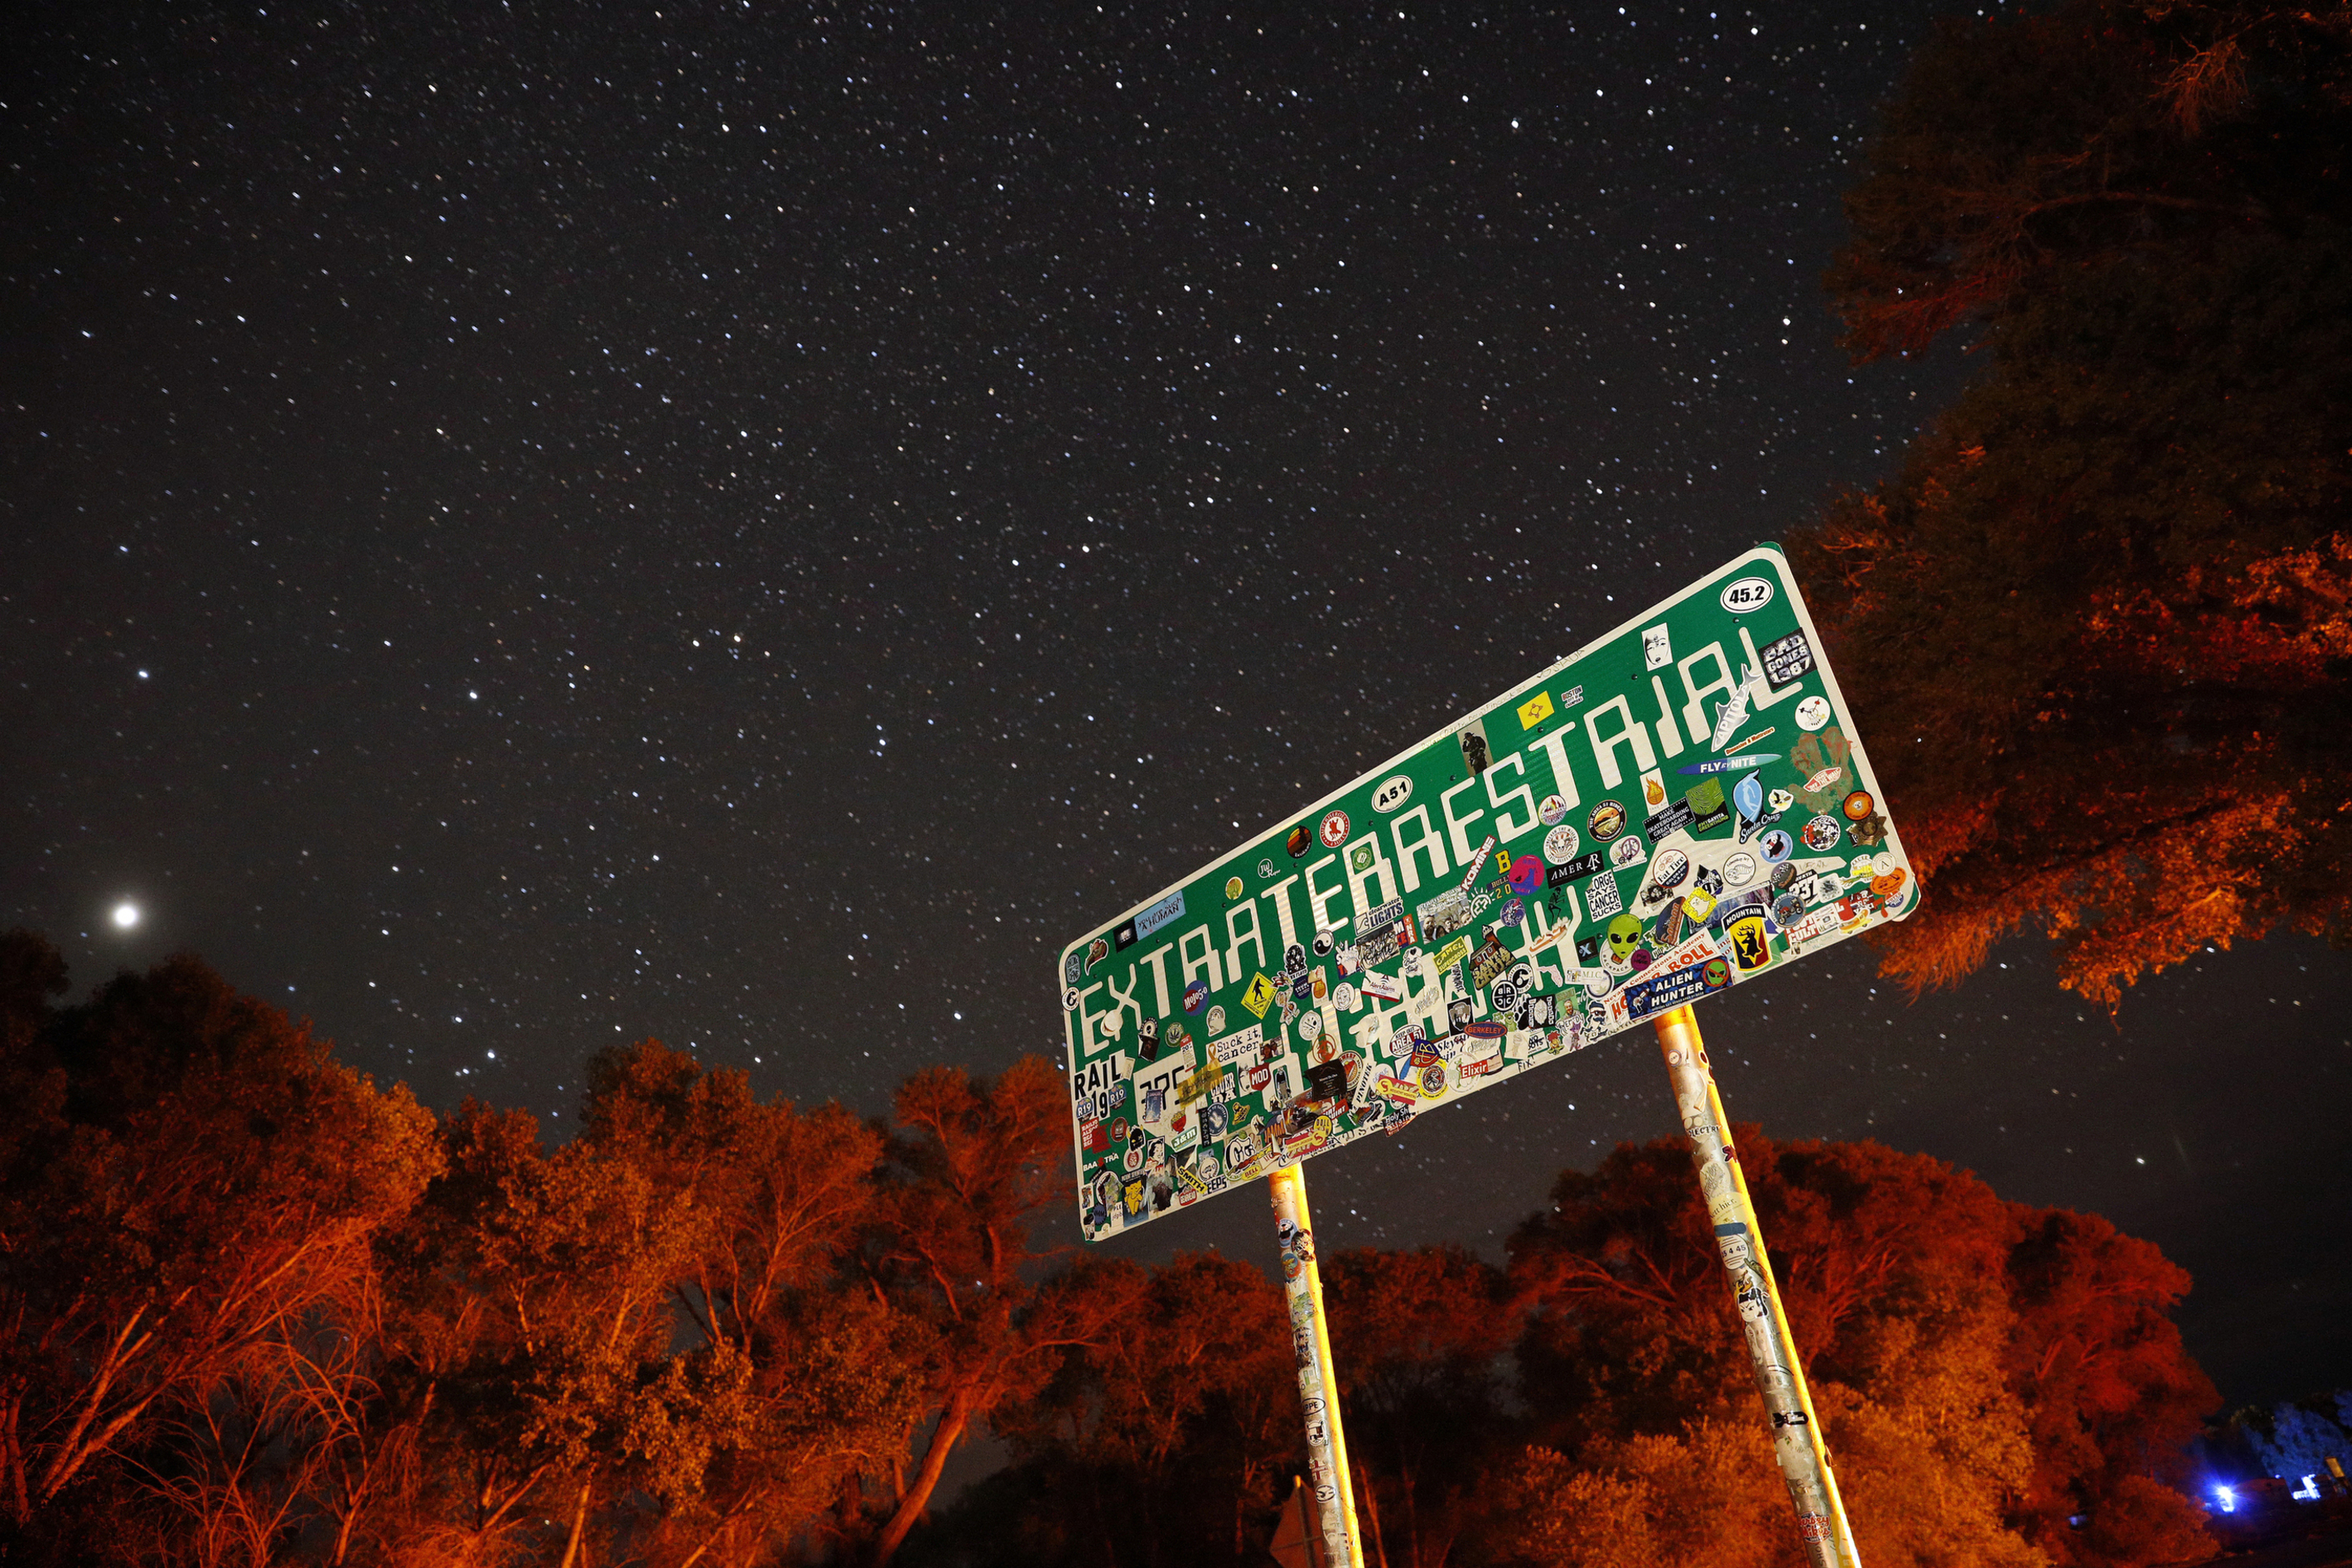 A sign advertises state route 375 as the Extraterrestrial Highway in Crystal Springs, Nev., on the way to Nevada Test and Training Range near Area 51. (John Locher/AP)